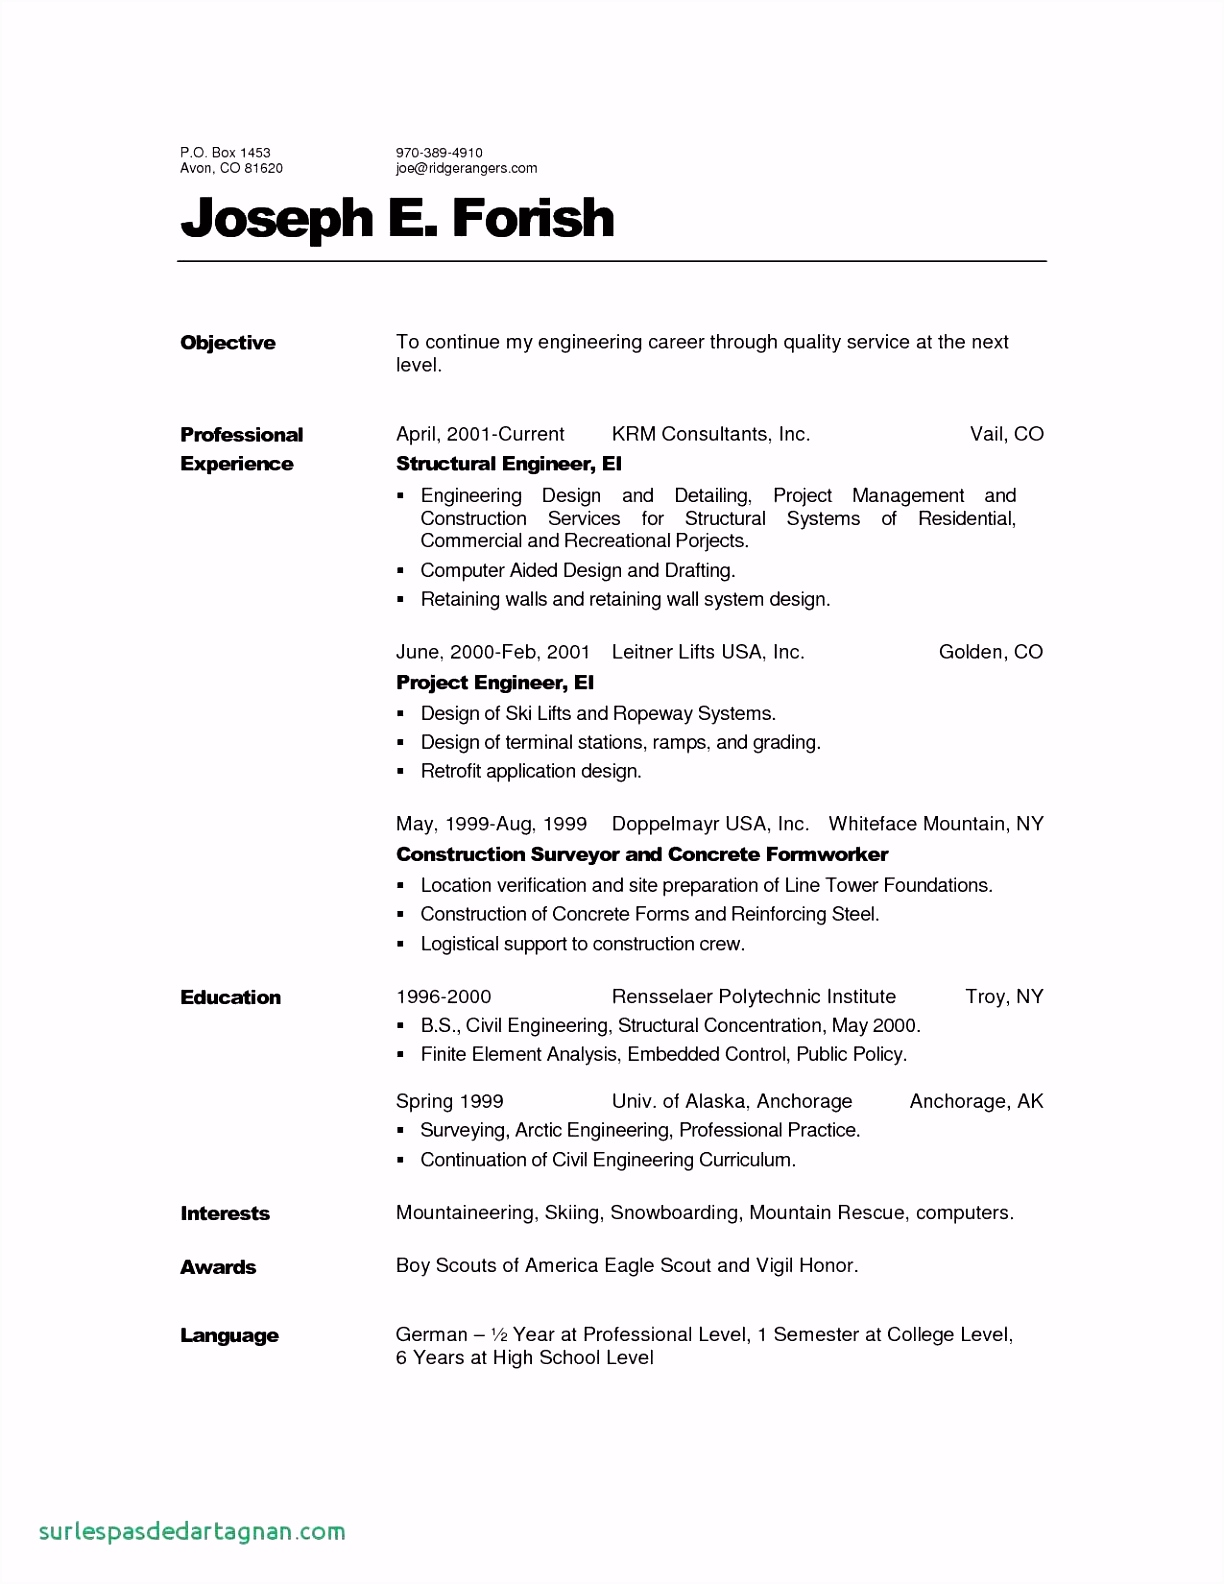 Updated Resume format Inspirational Word Etiketten Vorlage fice